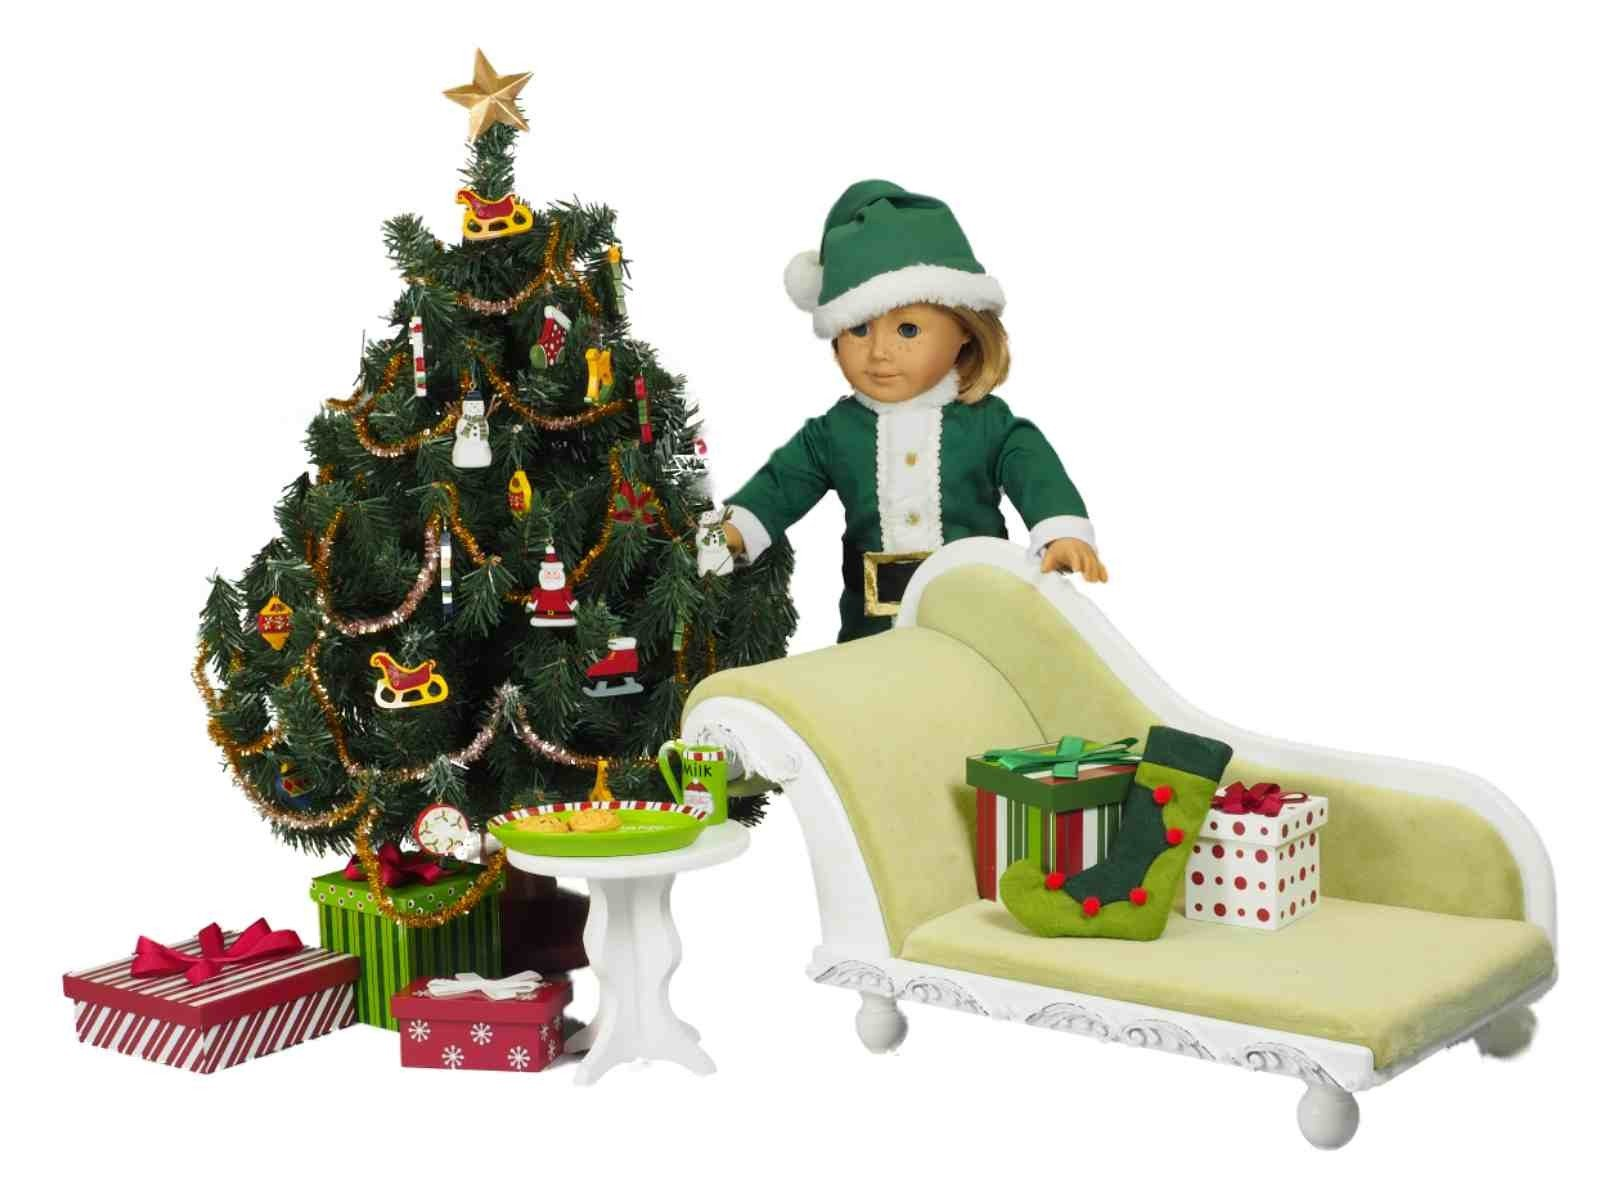 night before christmas accessory set for american girl dolls - Christmas Decorations For American Girl Dolls